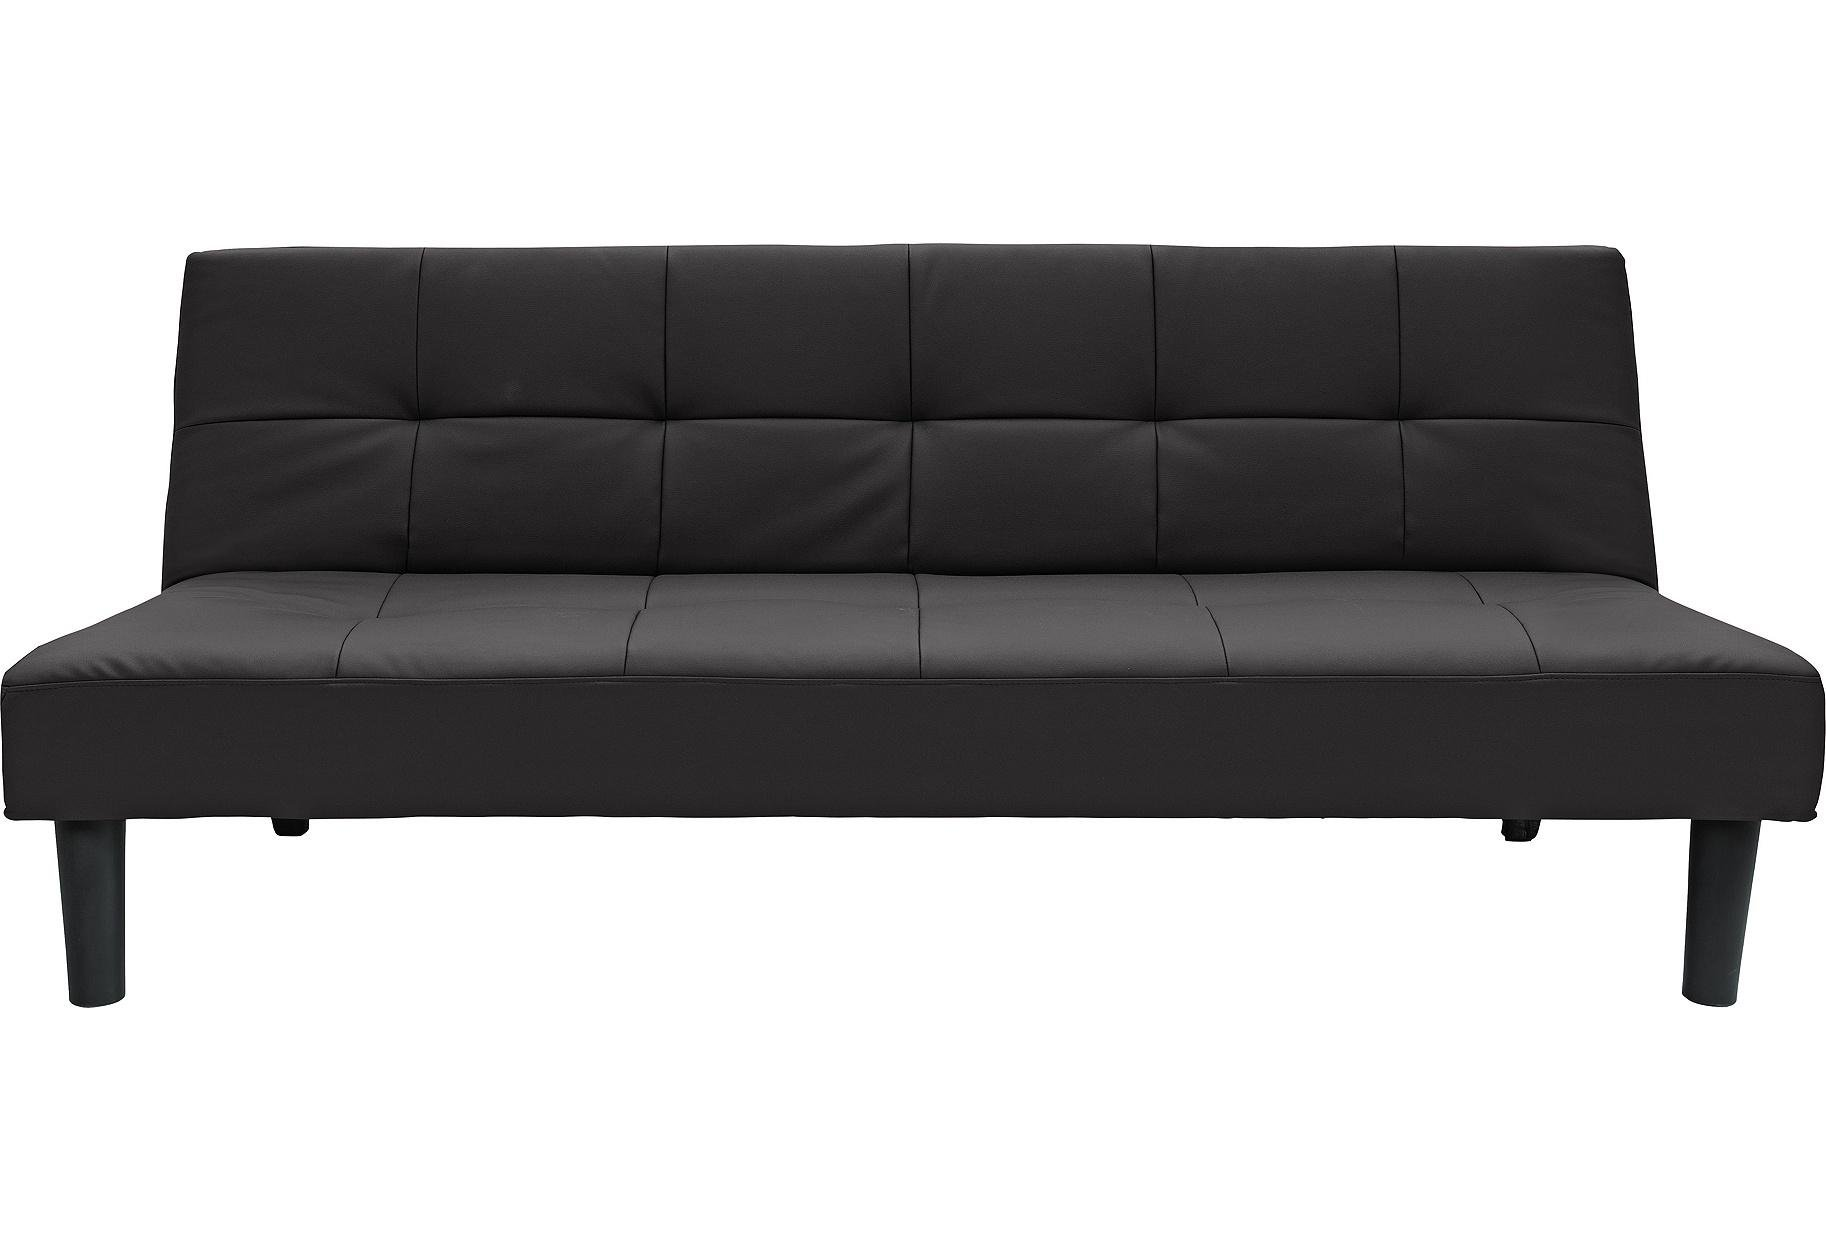 Buy Argos Home Patsy 2 Seater Clic Clac Sofa Bed - Black | Sofa